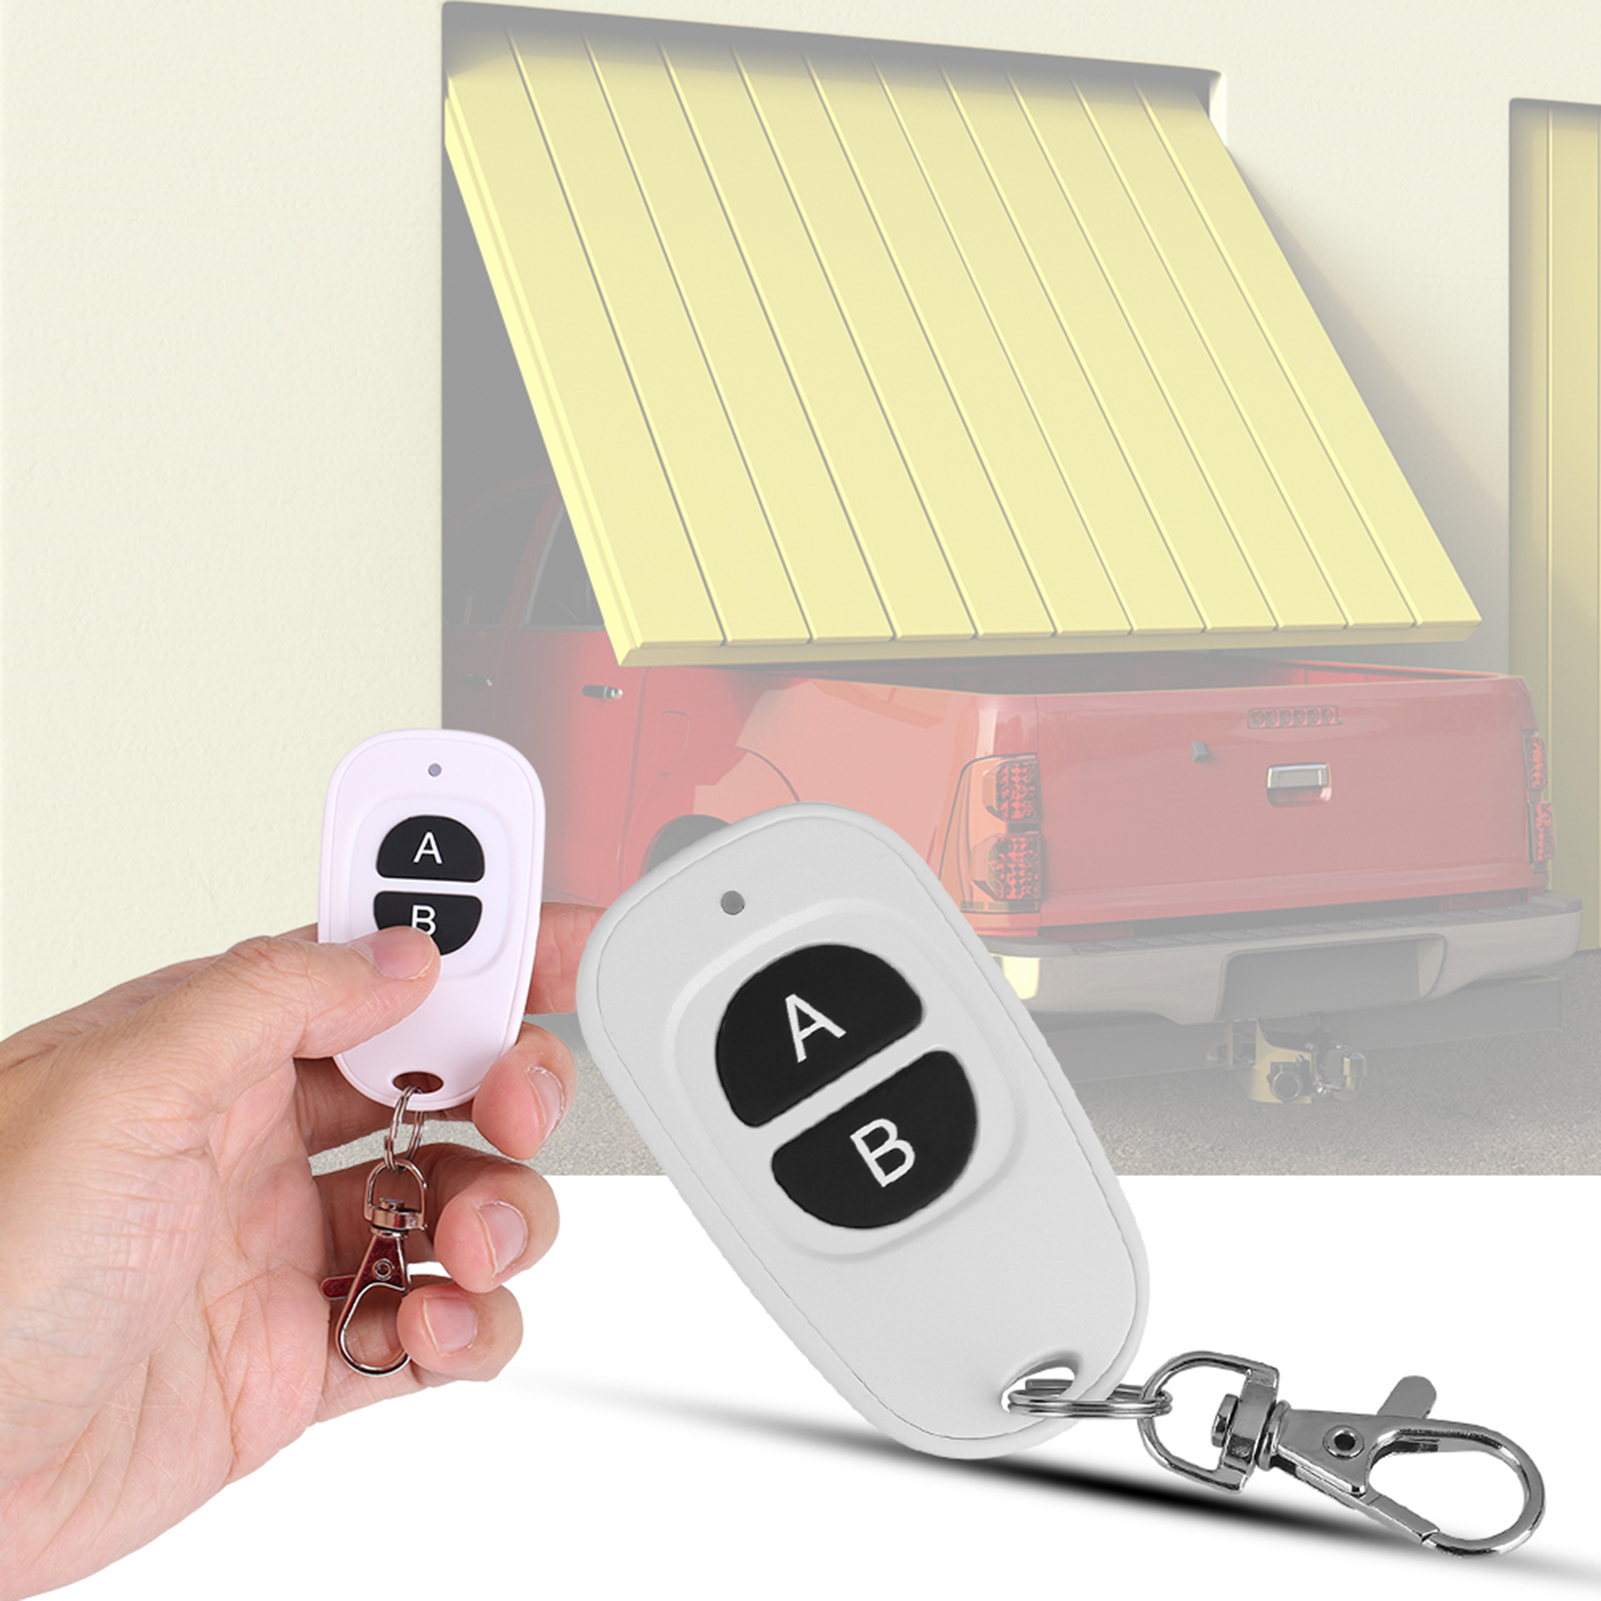 433MHz-EV1527-RF-Wireless-Transmitter-Garage-Door-1-4-Channel-Key-Remote-Control miniature 27